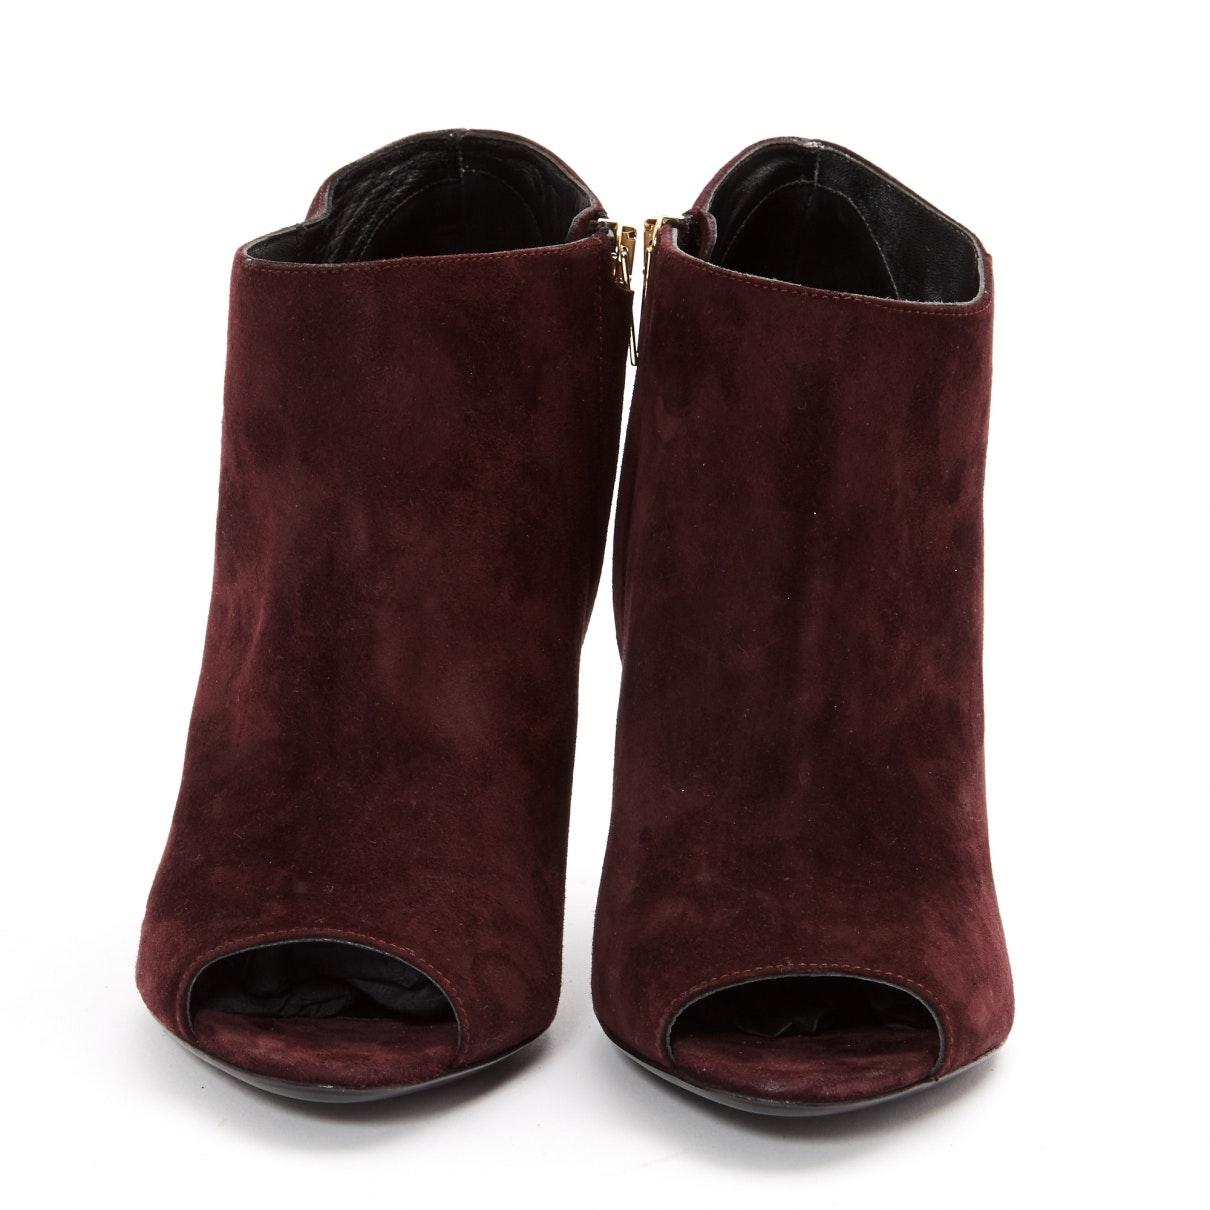 Burberry Suede Ankle Boots in Burgundy (Purple)